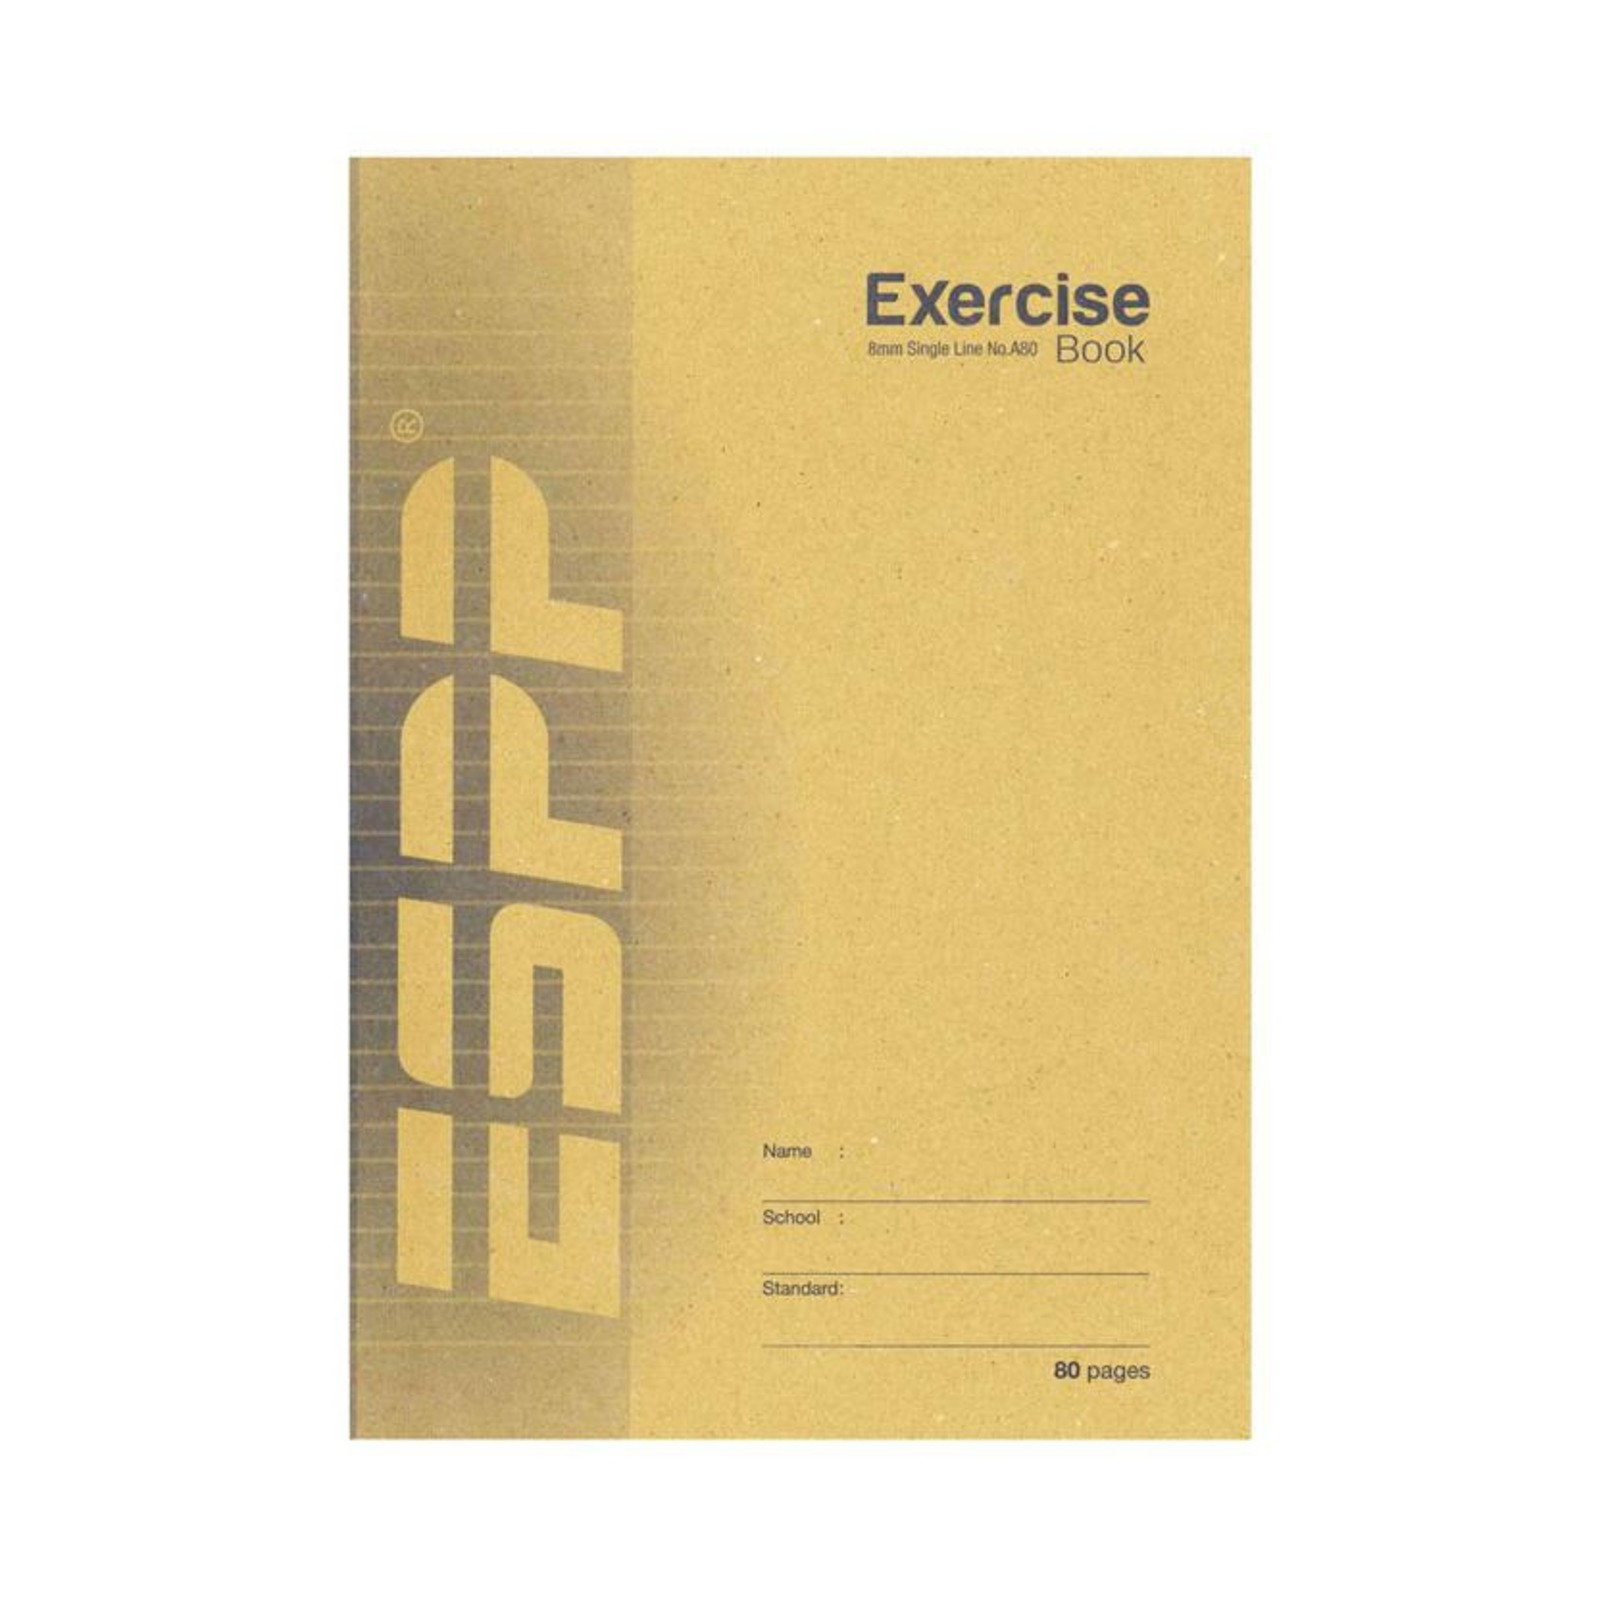 A4 Soft Exercise Book Single Line A80